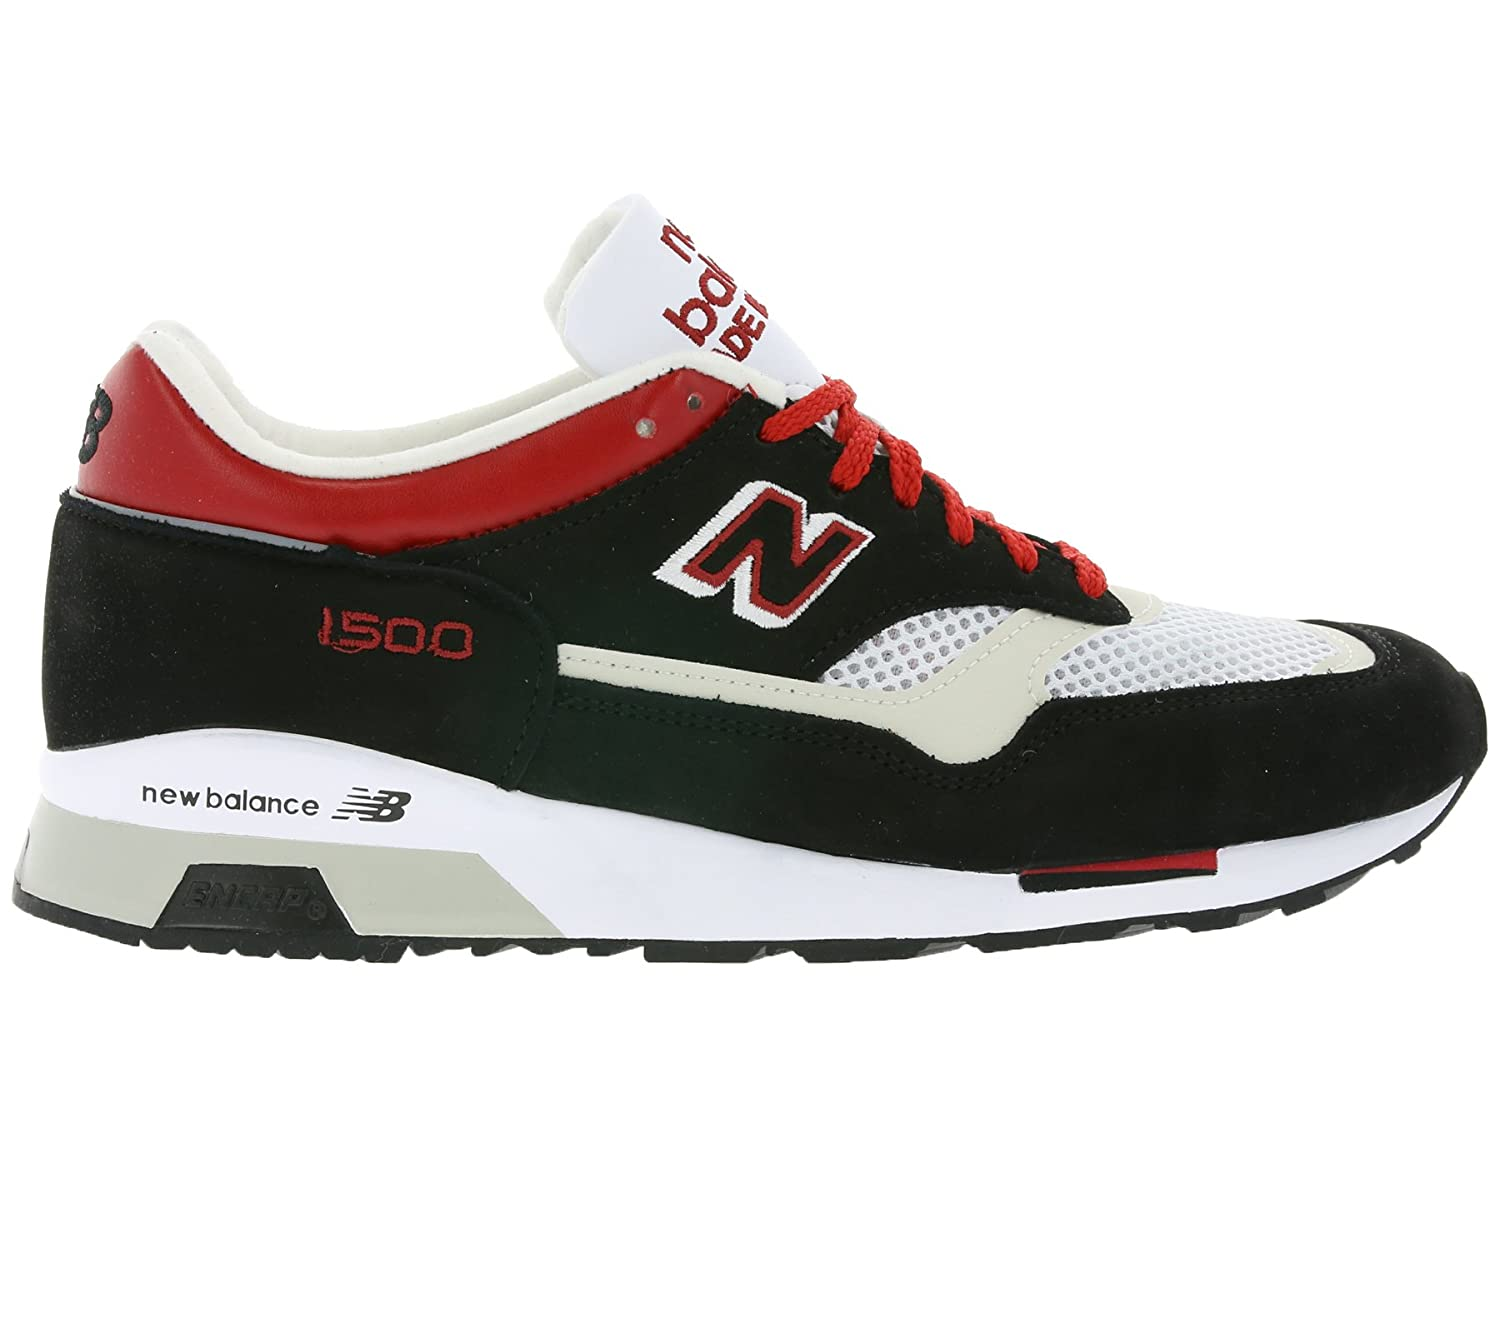 low priced 9f8ba f9160 Black Shoes New Balance 1500